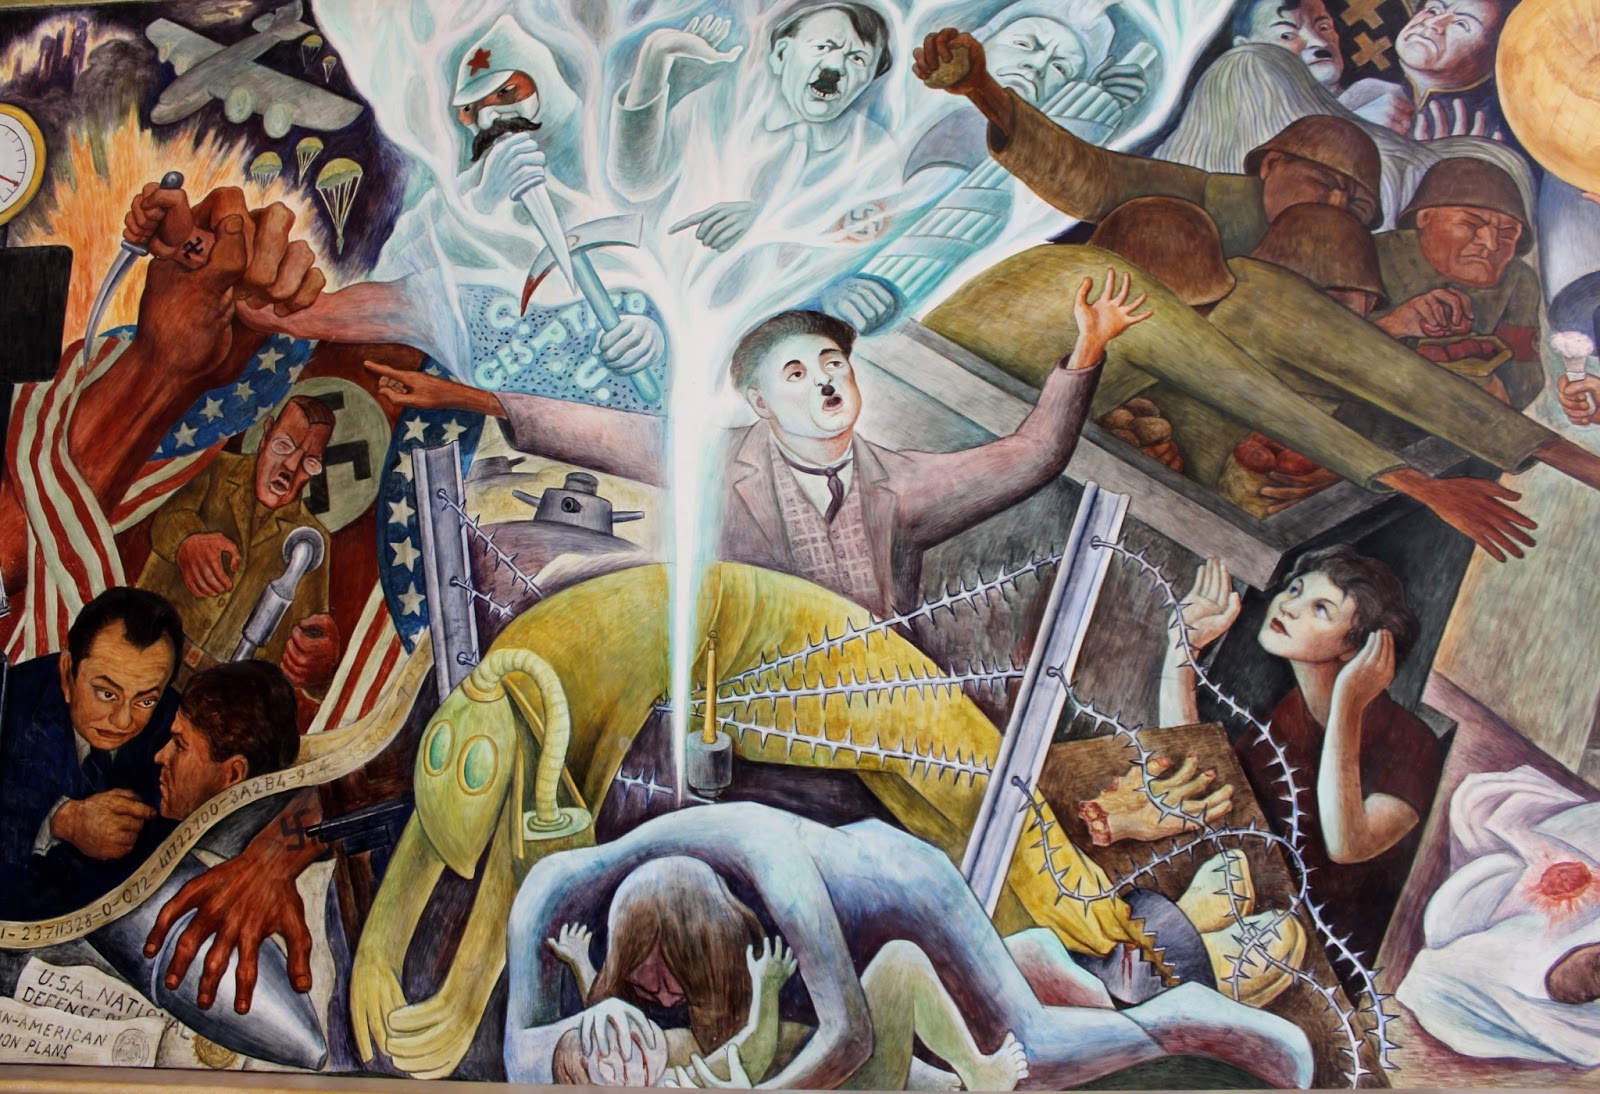 Bay area arts diego rivera 39 s pan american unity mural for Diego rivera mural in san francisco